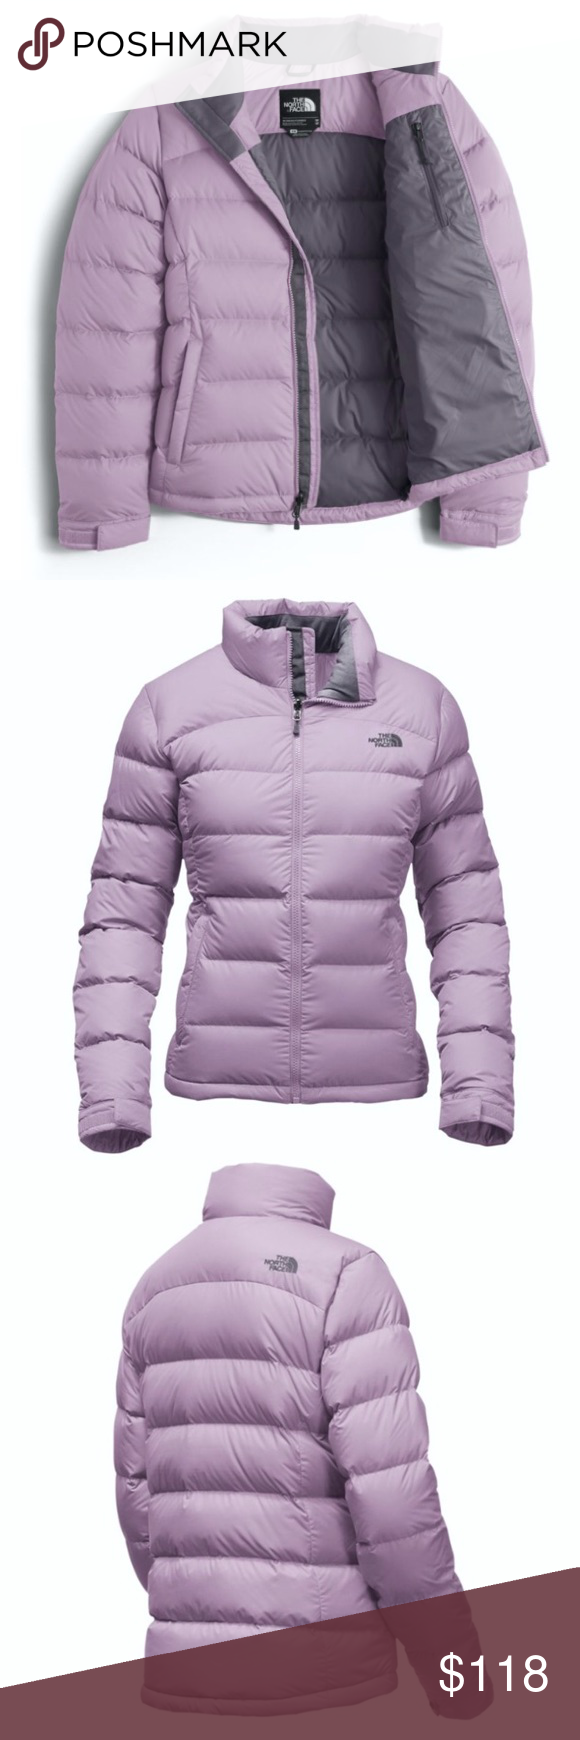 3f4f5d71e NORTH FACE Nuptse Lilac Grey Puffer Coat JACKET S BRAND NEW!! Super ...